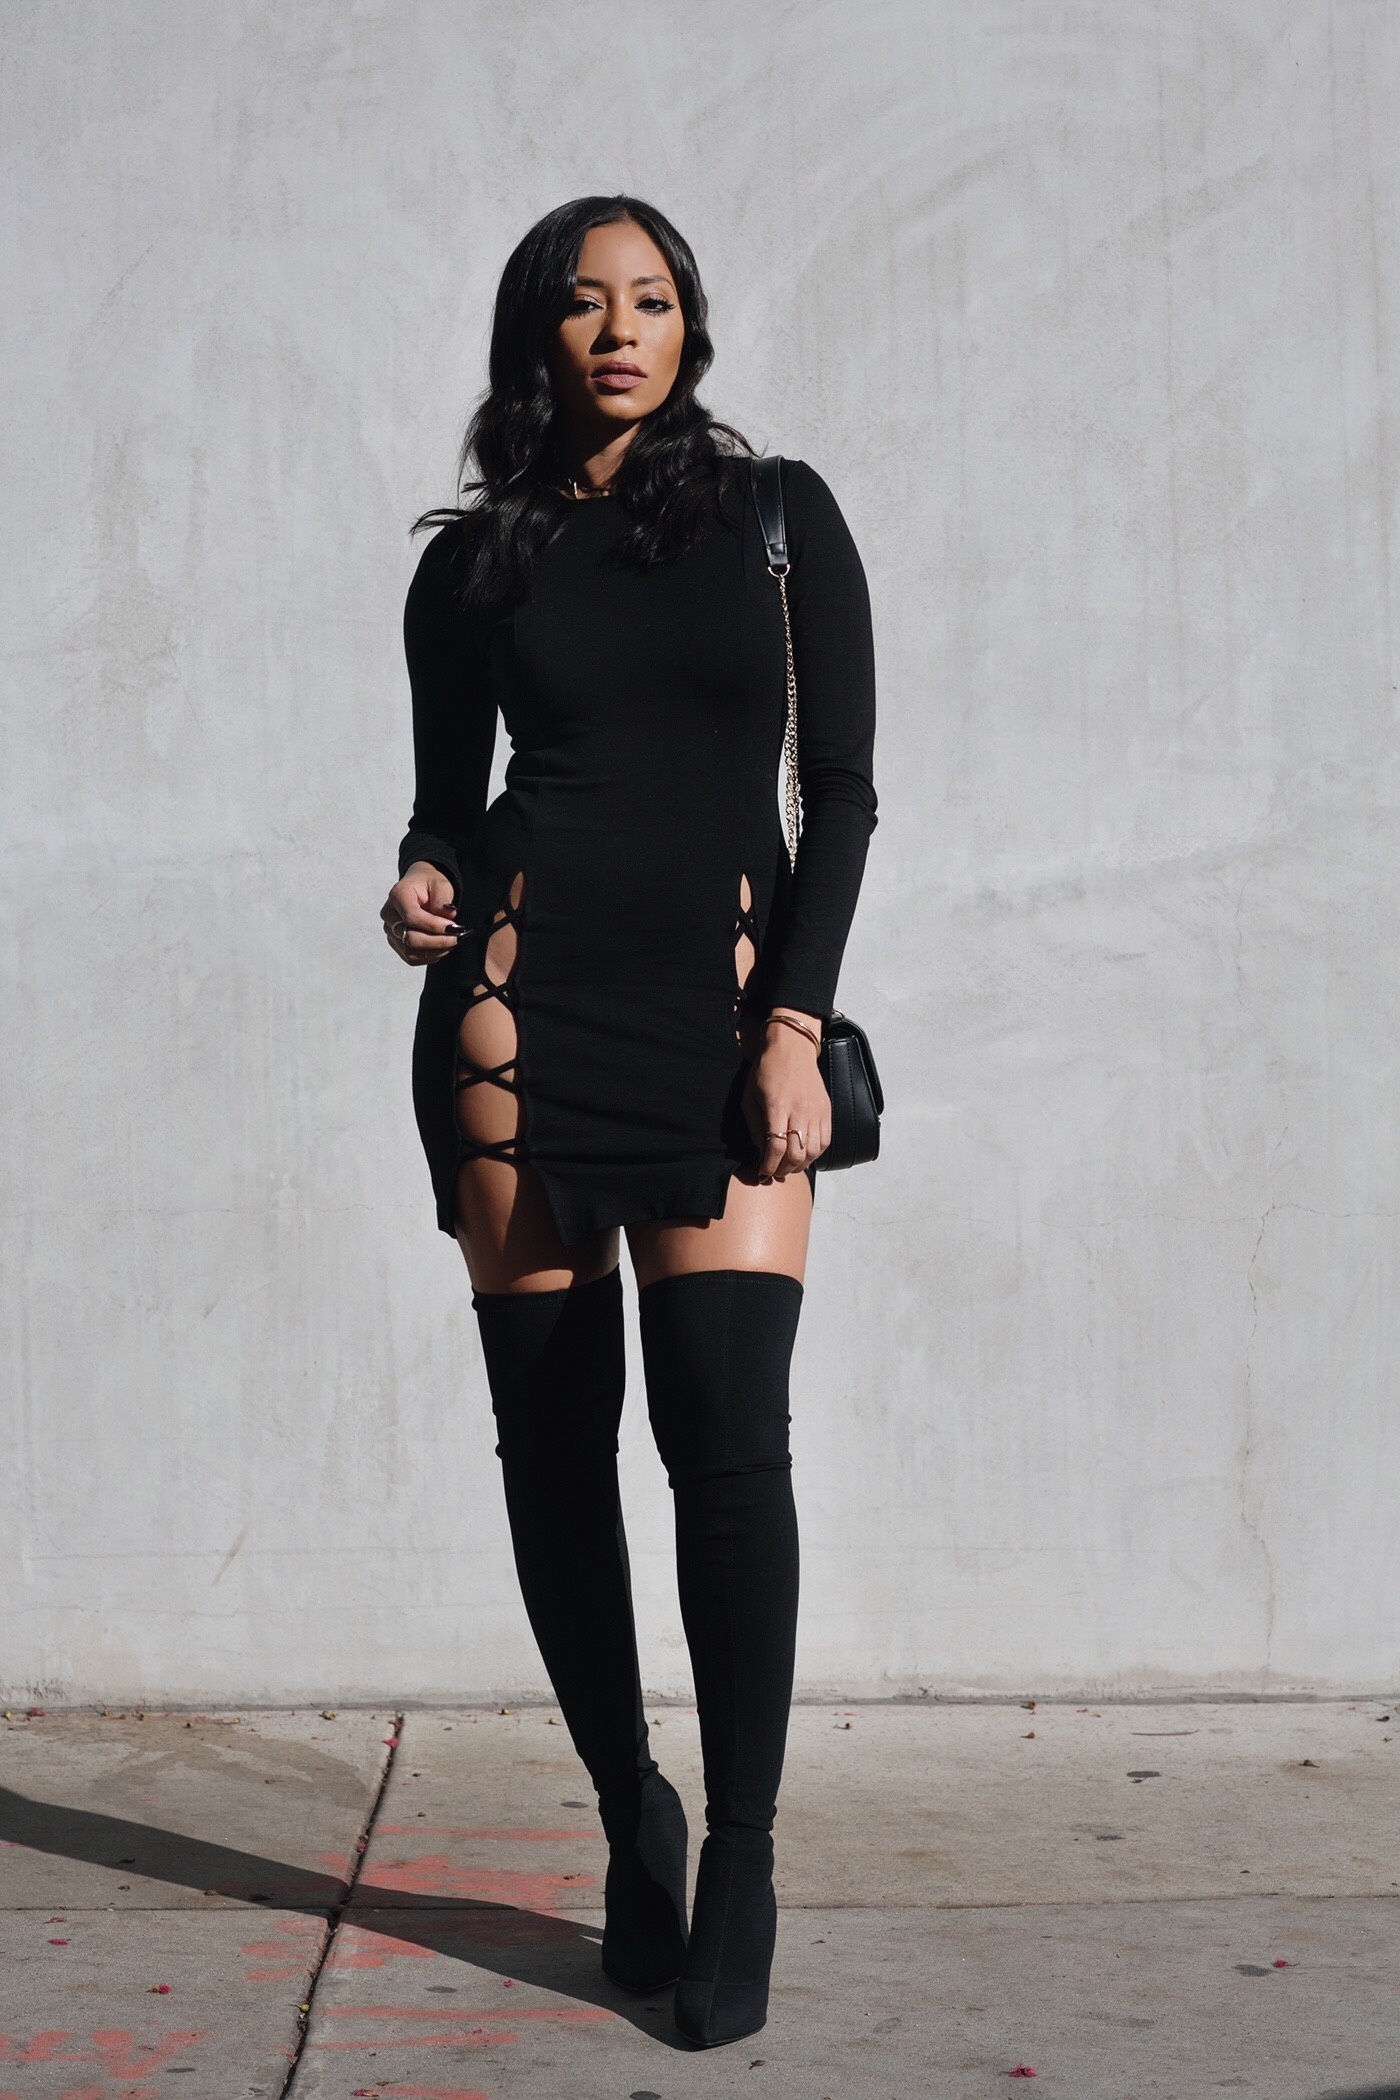 Little Black Dress, Big Black Boots – HangItUpLA